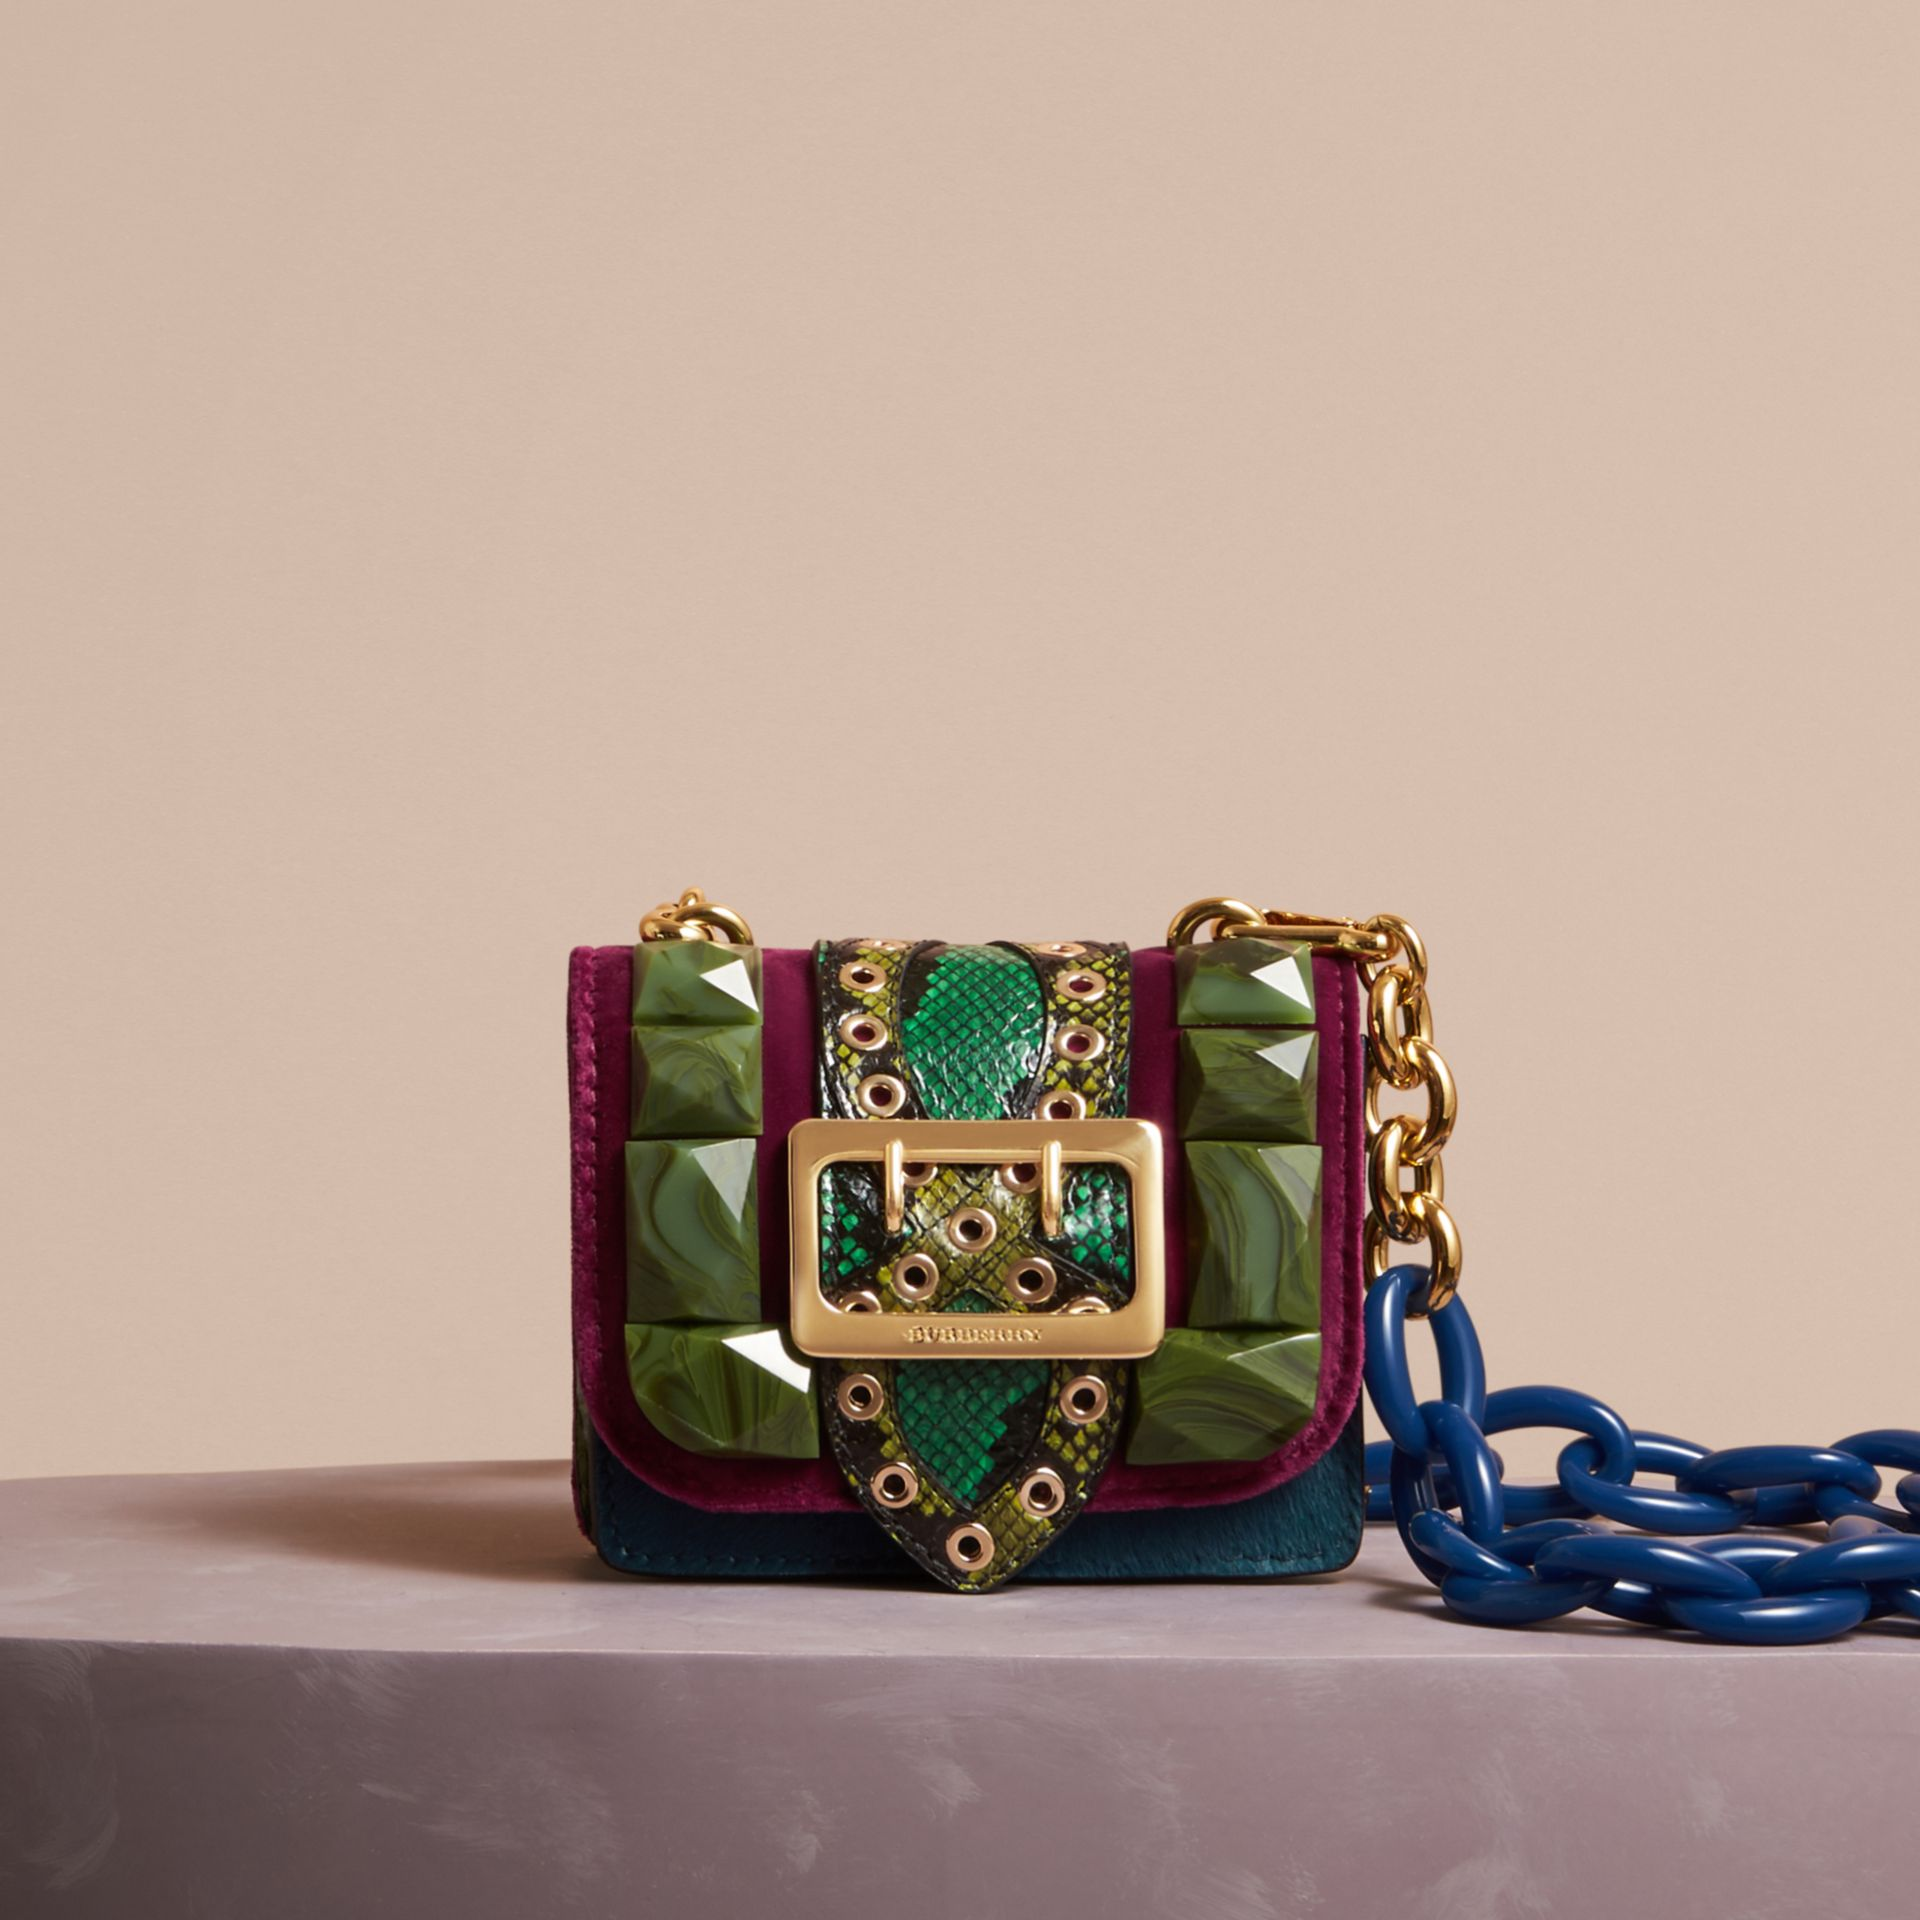 The Mini Square Buckle Bag in Calfskin, Snakeskin and Velvet in Damson - Women | Burberry Canada - gallery image 6